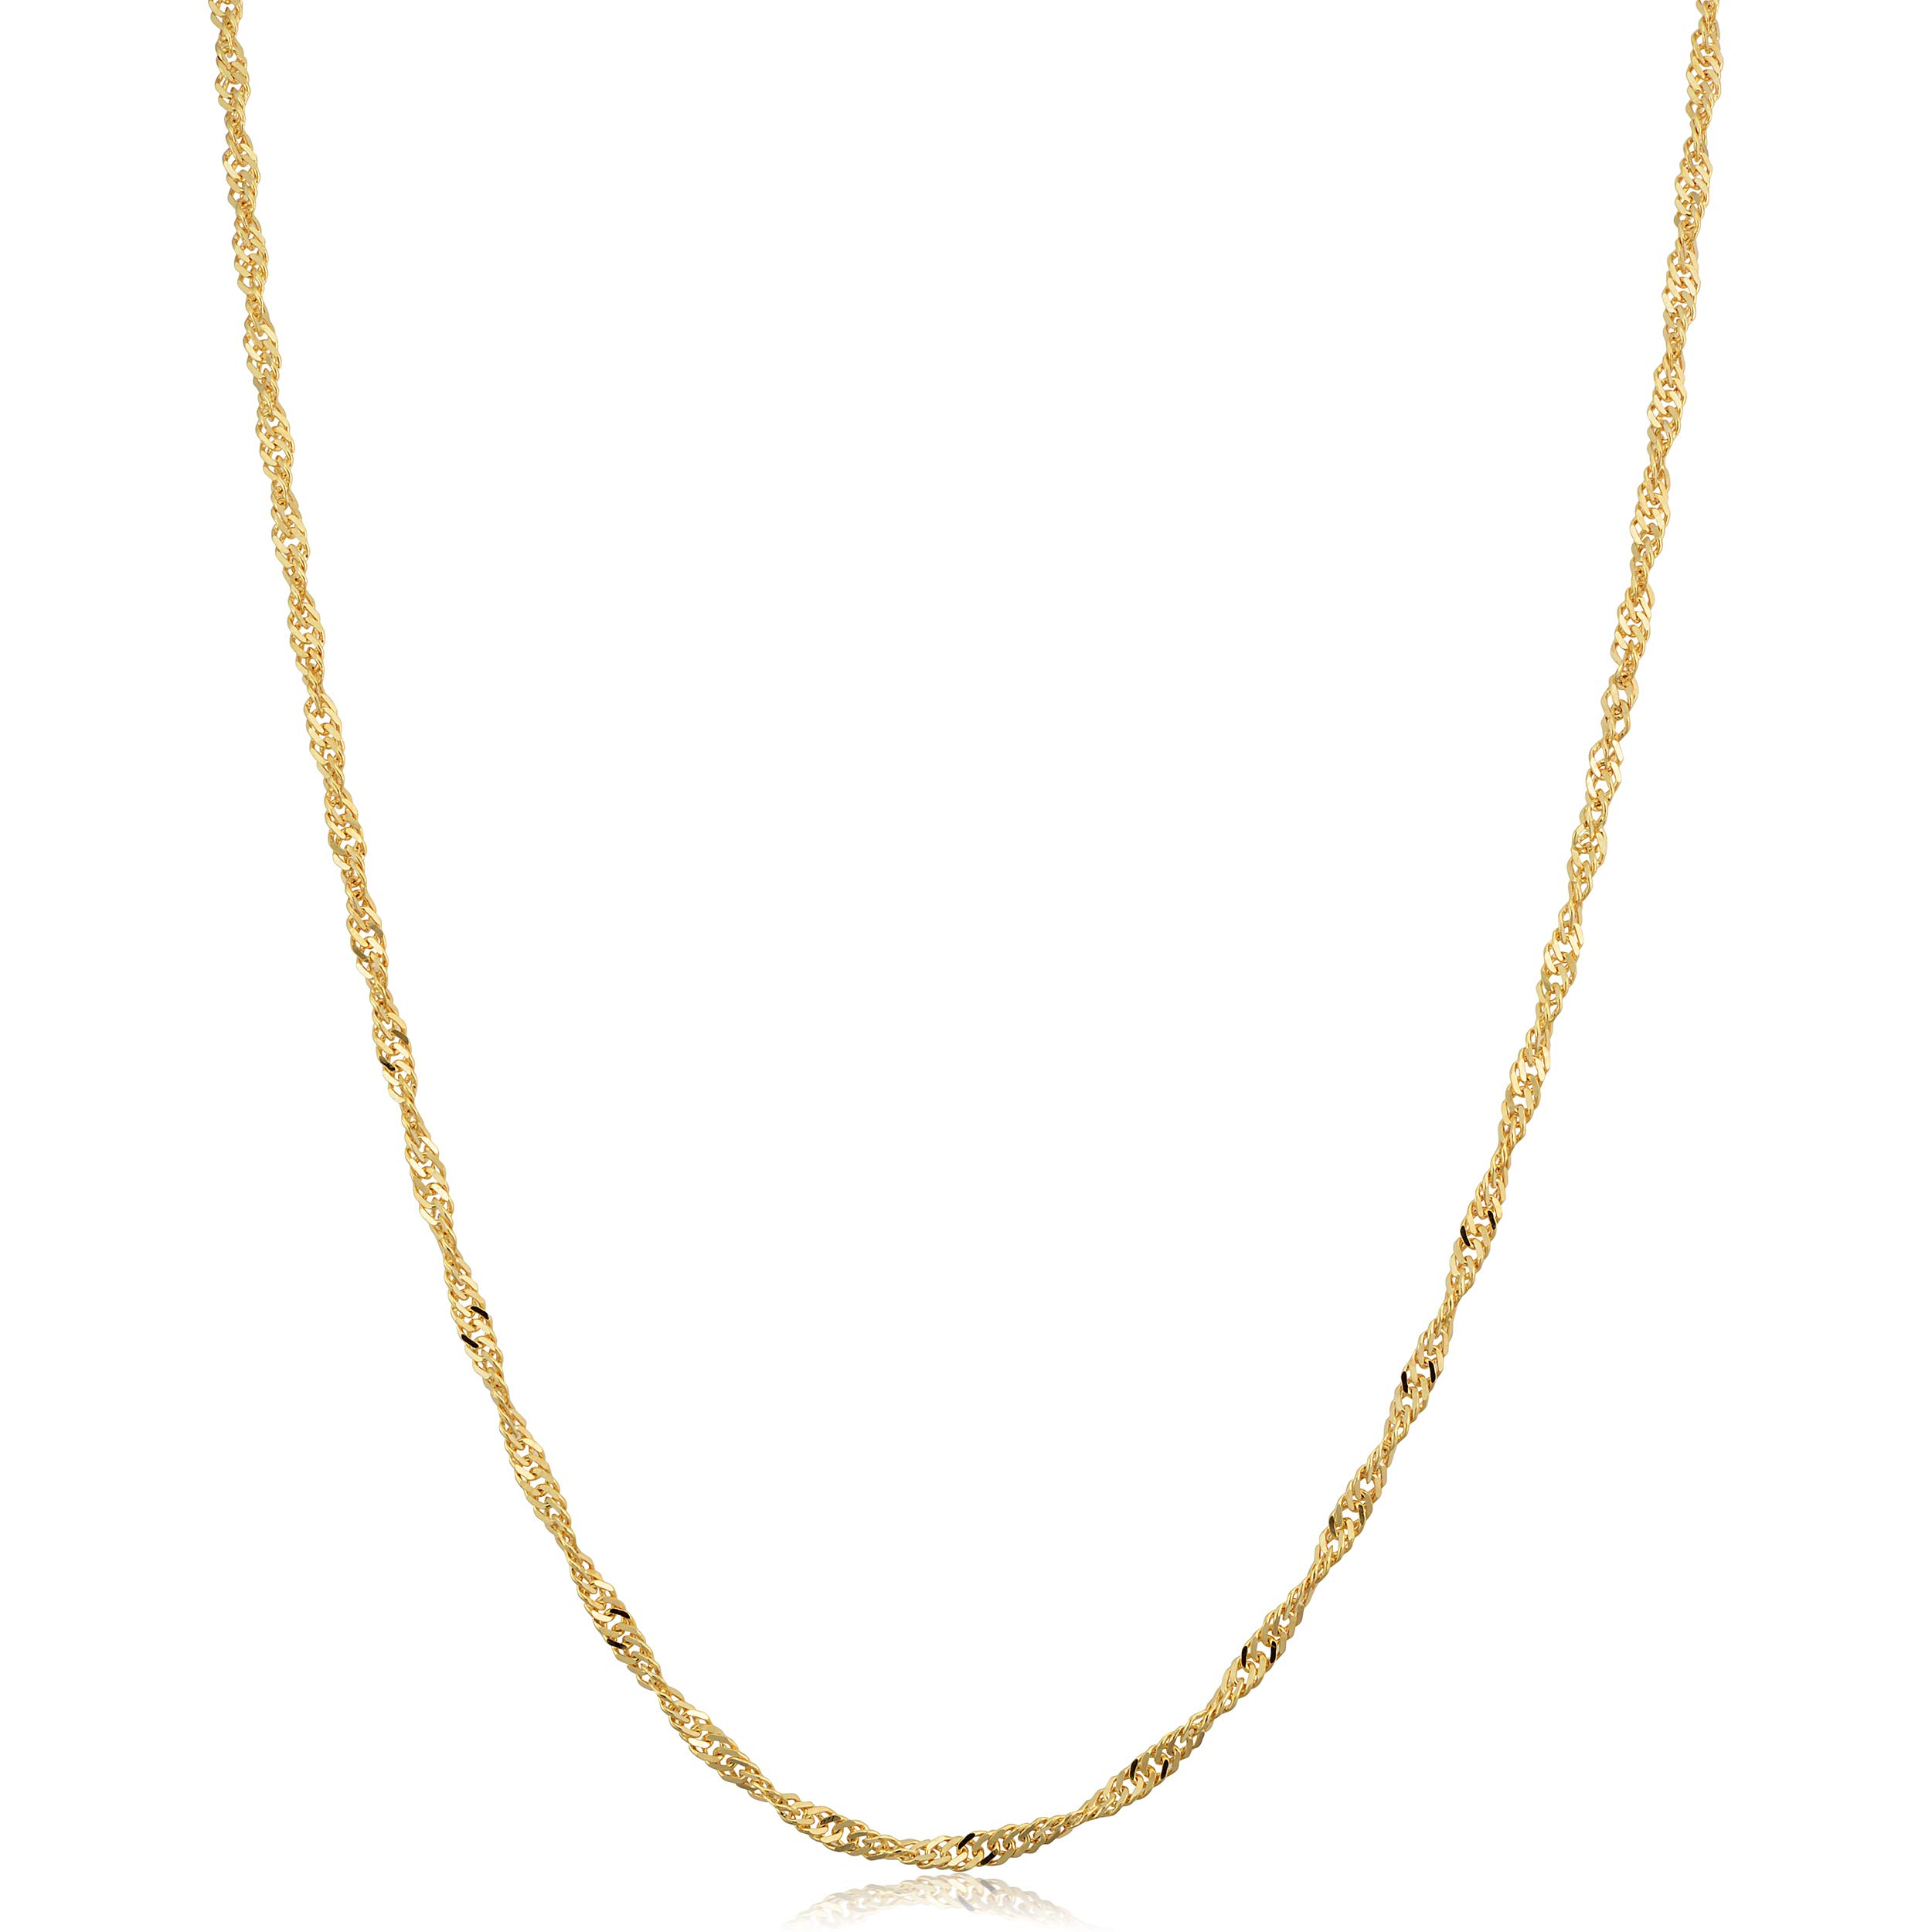 14k Yellow Gold Singapore Chain Necklace (1.7mm, 24 inch)